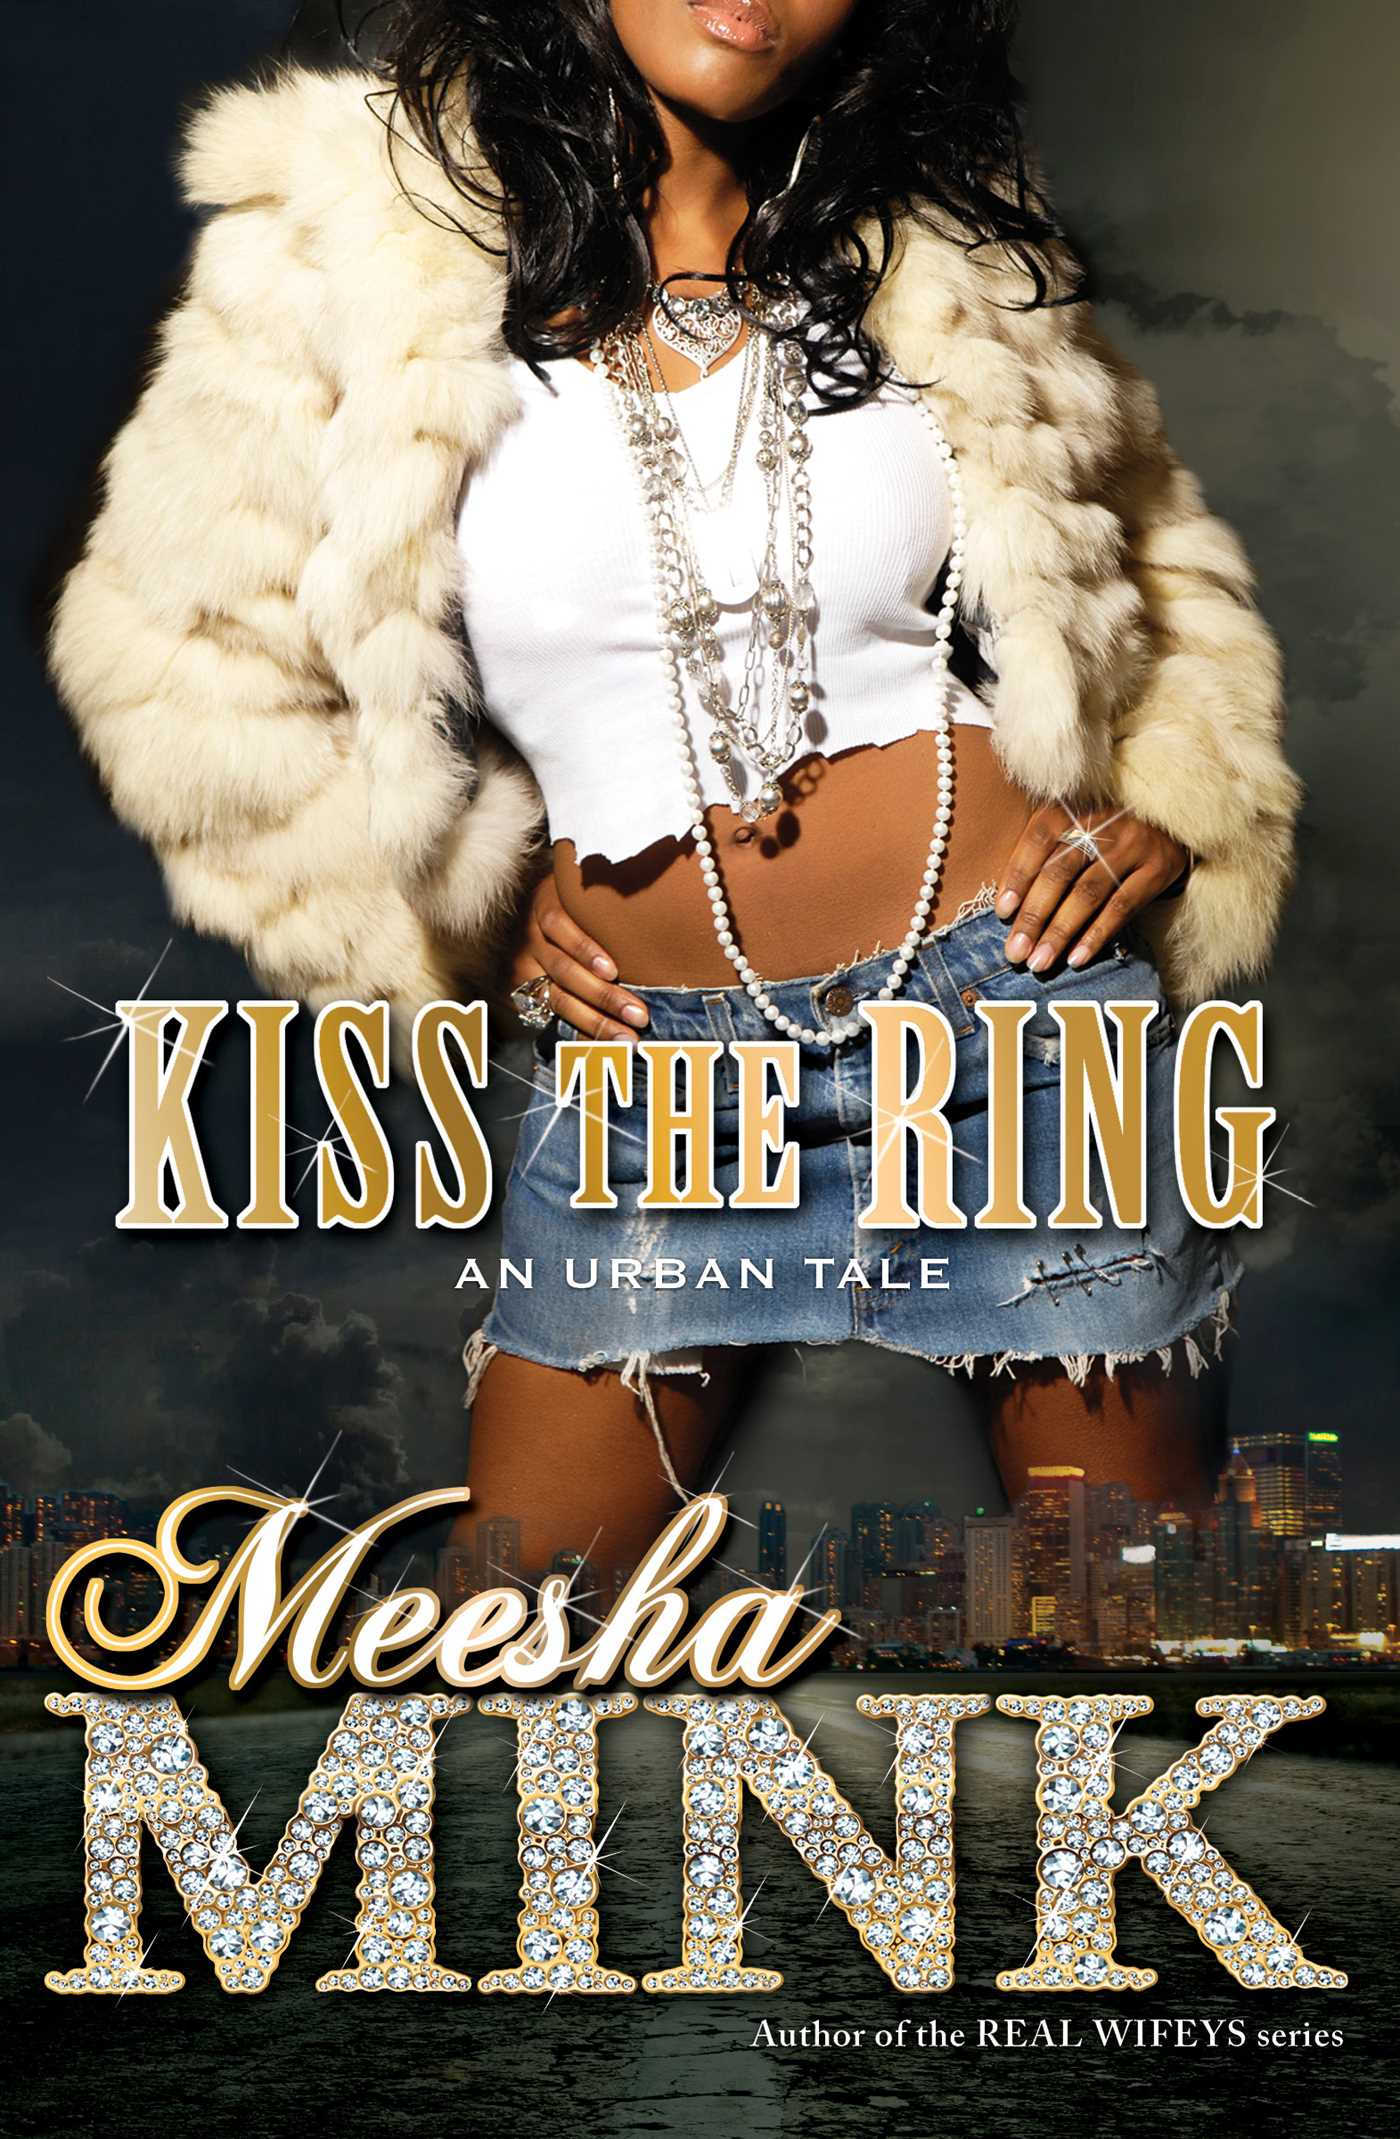 Book Cover Image (jpg): Kiss the Ring